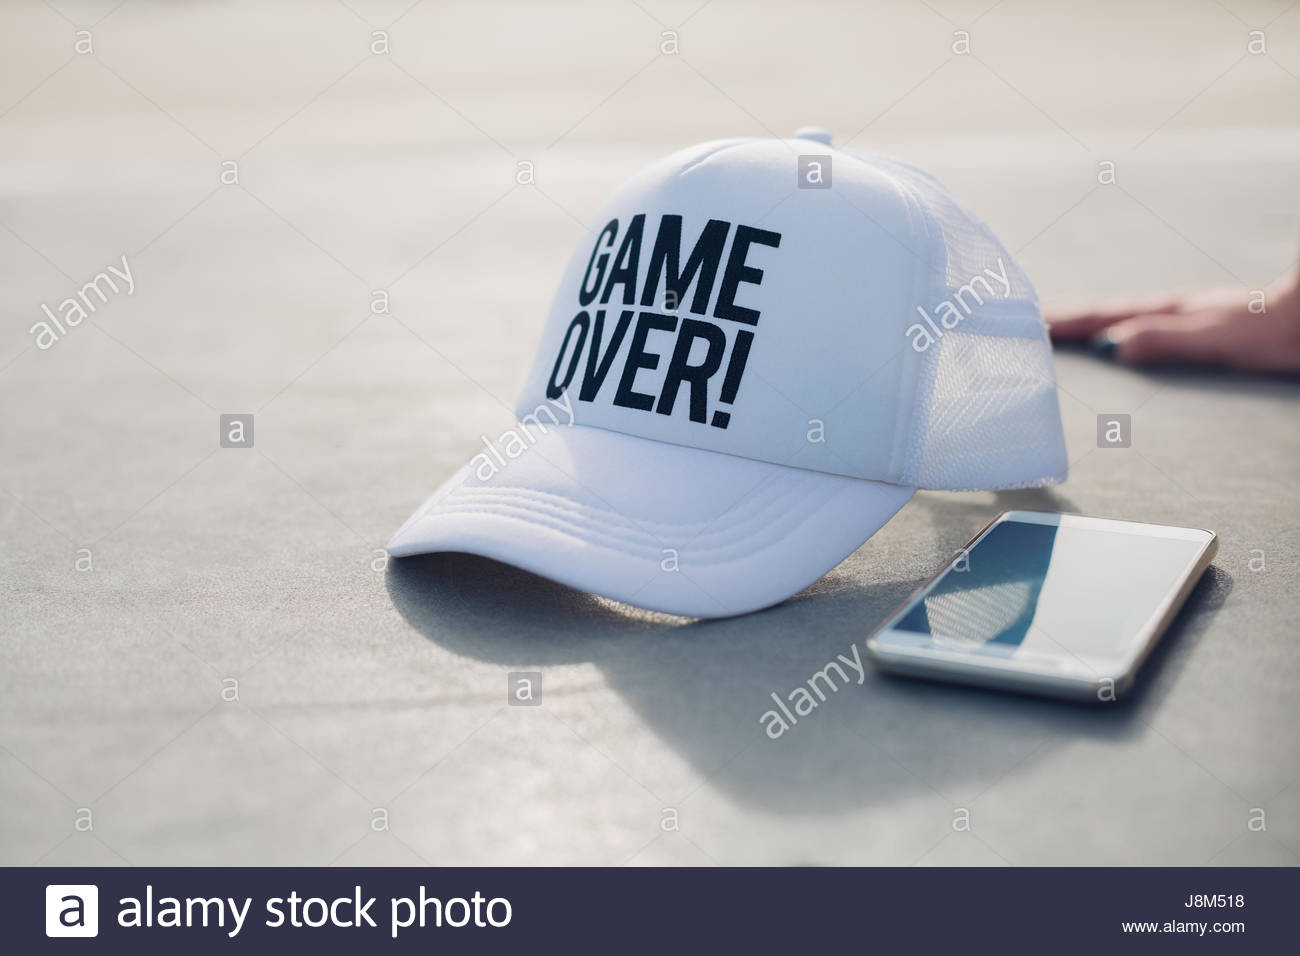 Sports equipment, game over cap and mobile phone - Stock Image